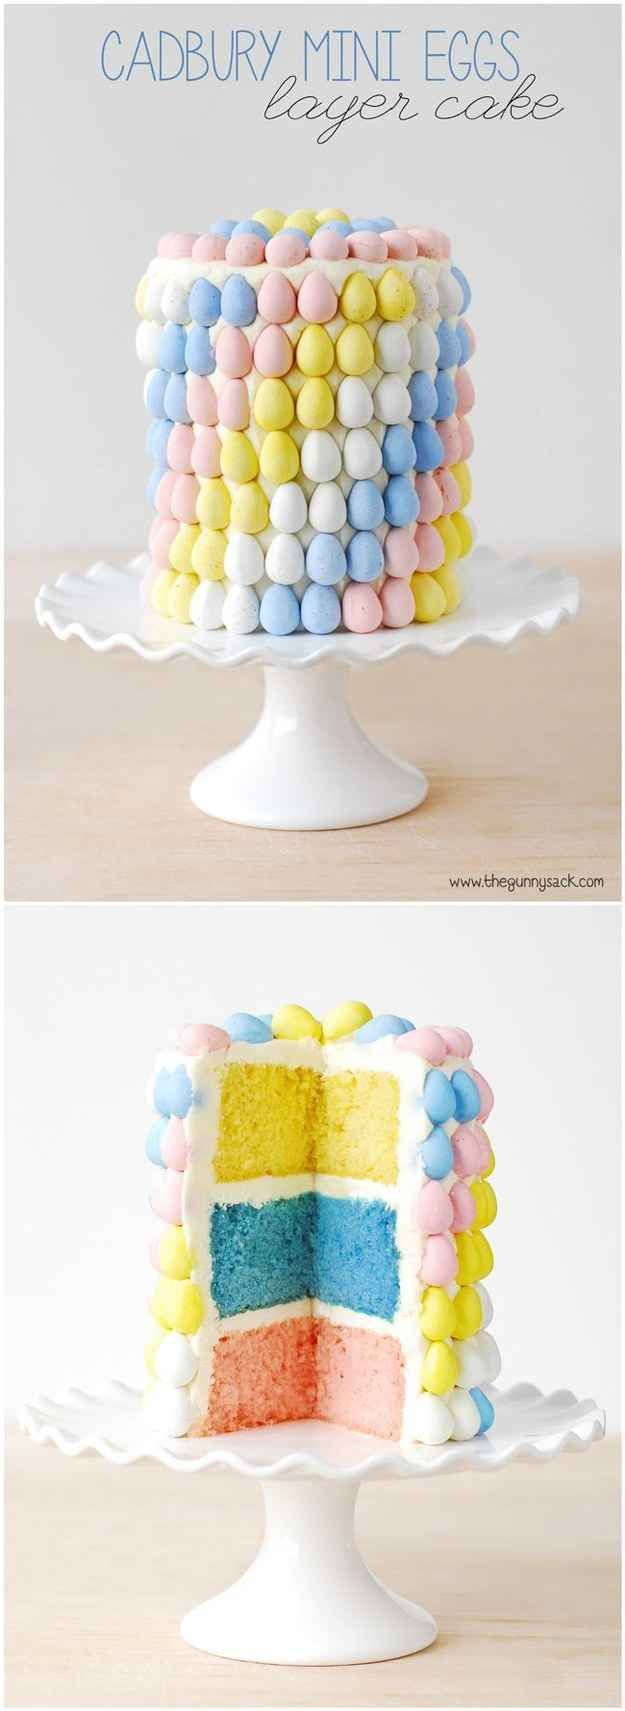 Community: 16 Cadbury Mini Egg Recipes Just In Time For Spring